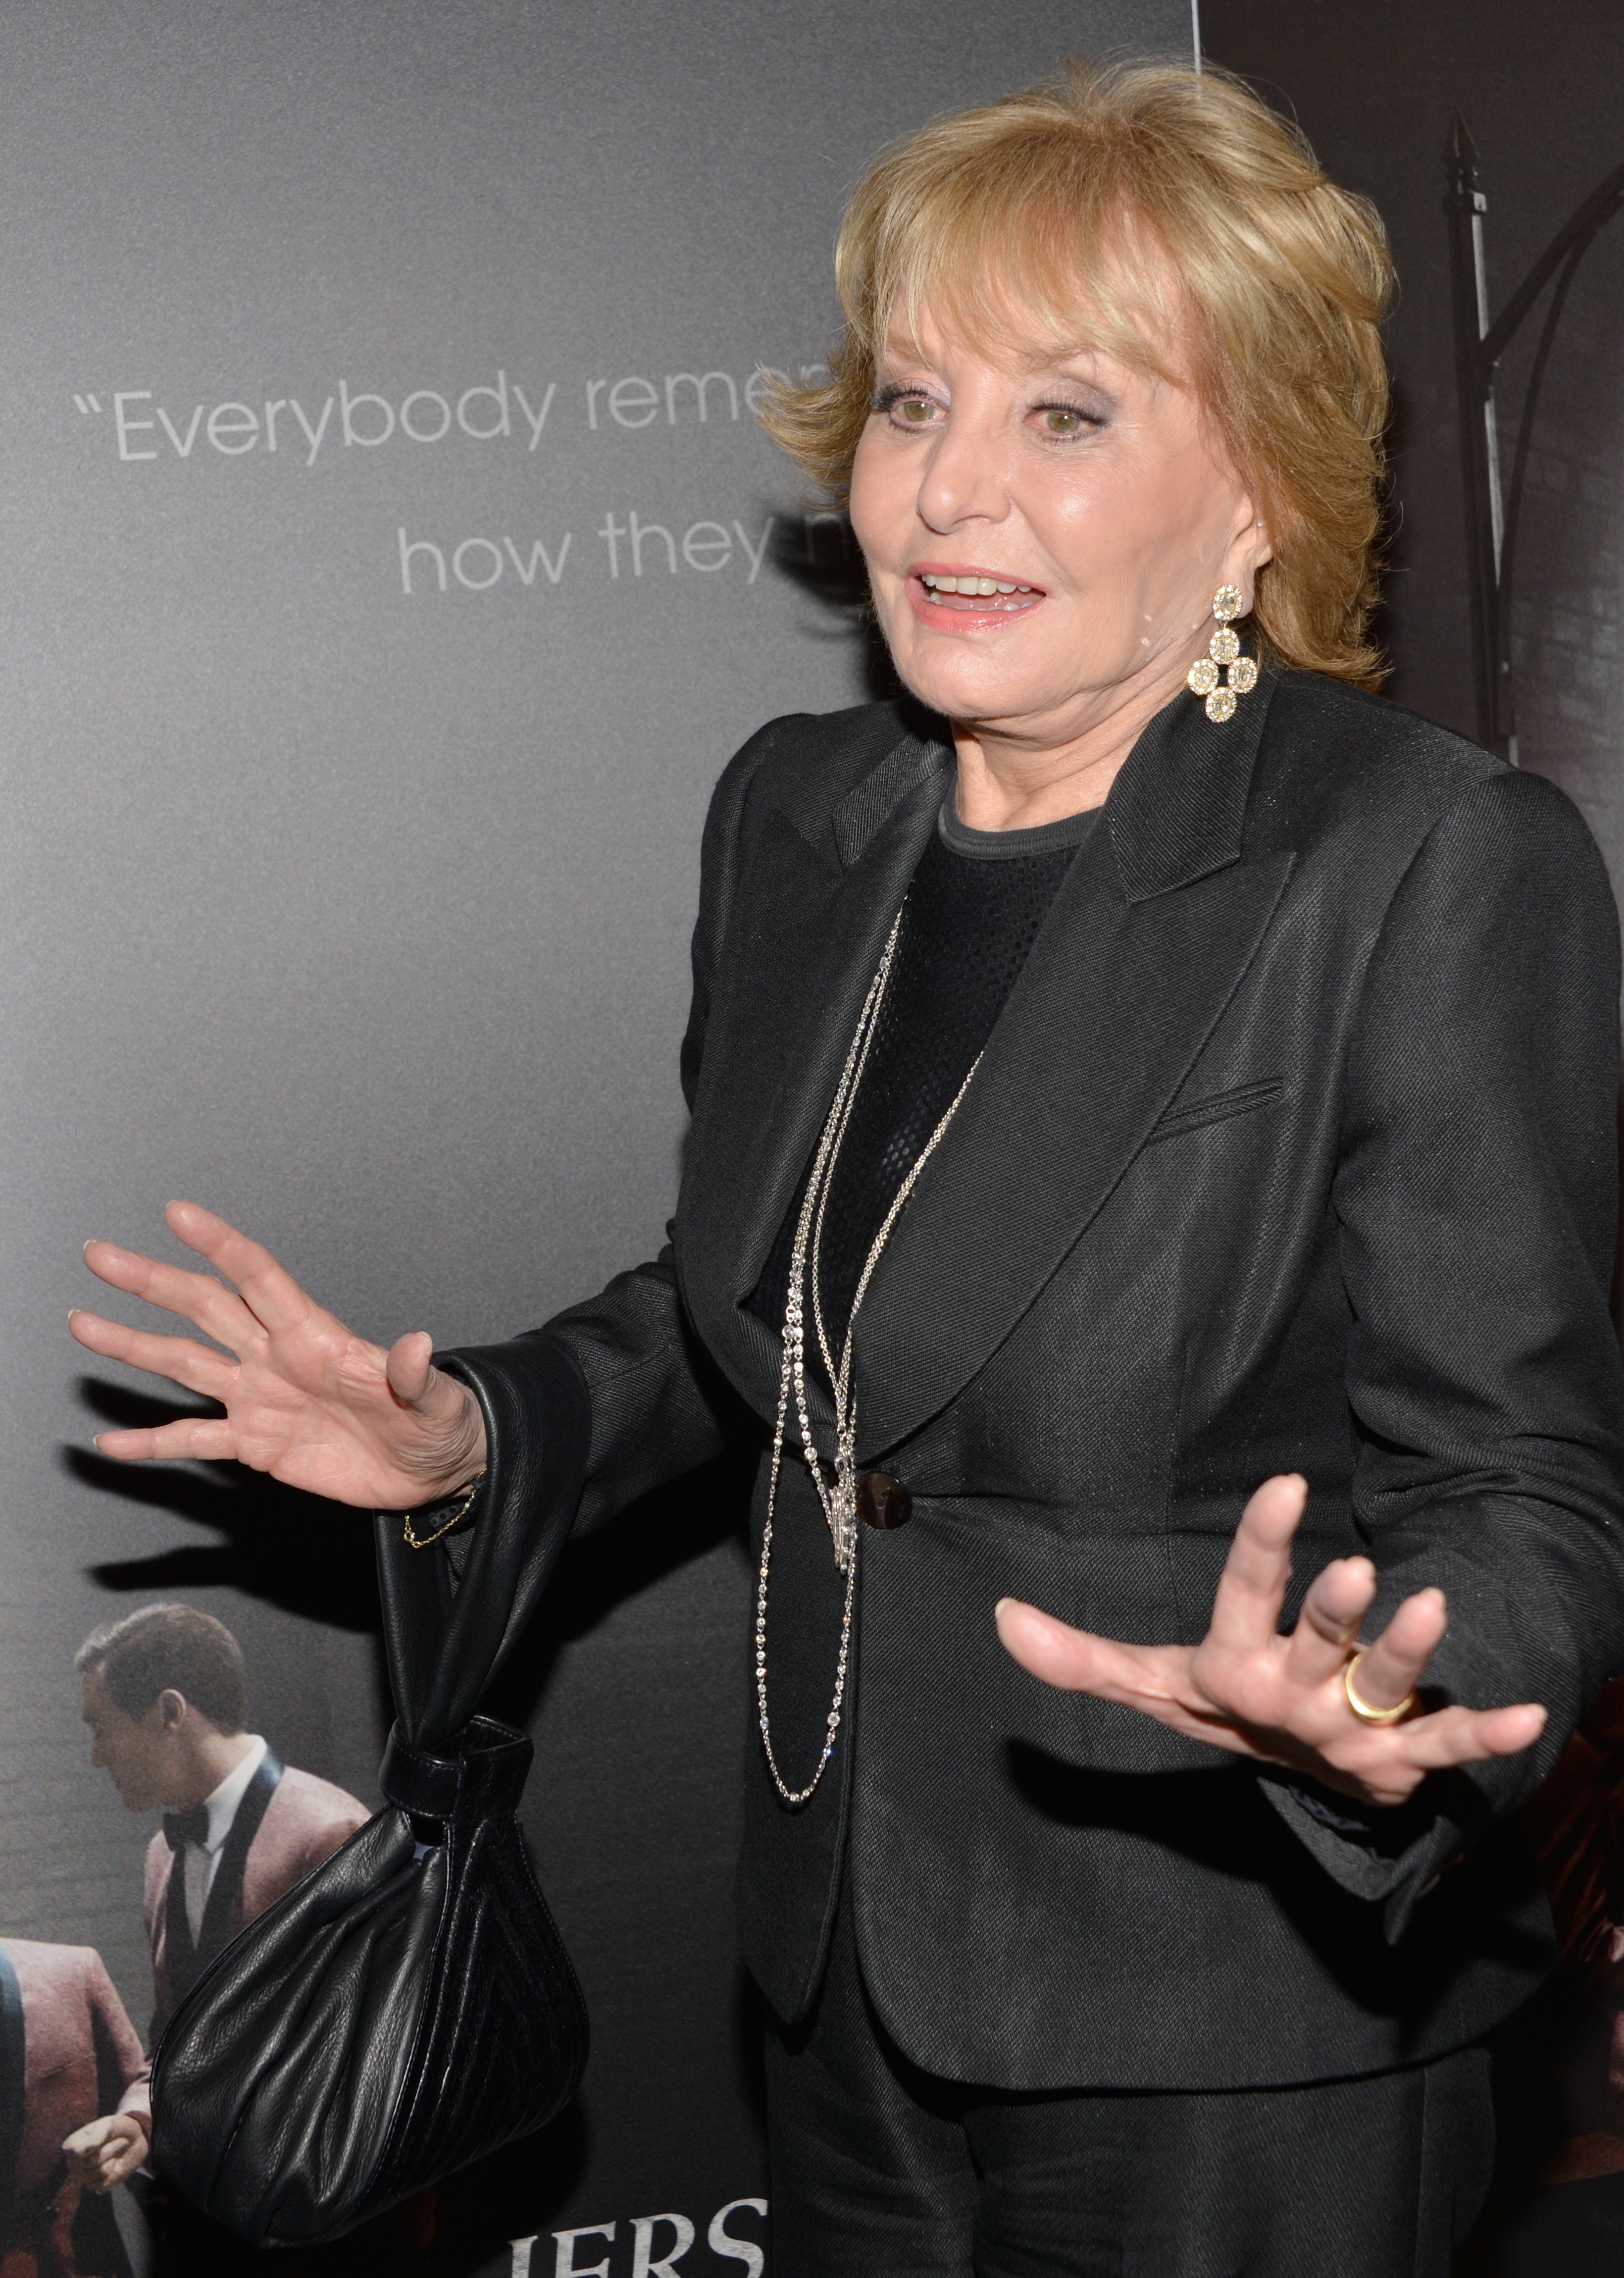 Barbara Walters will come out of retirement to interview the father of the Isla Vista shooter for ABC News.